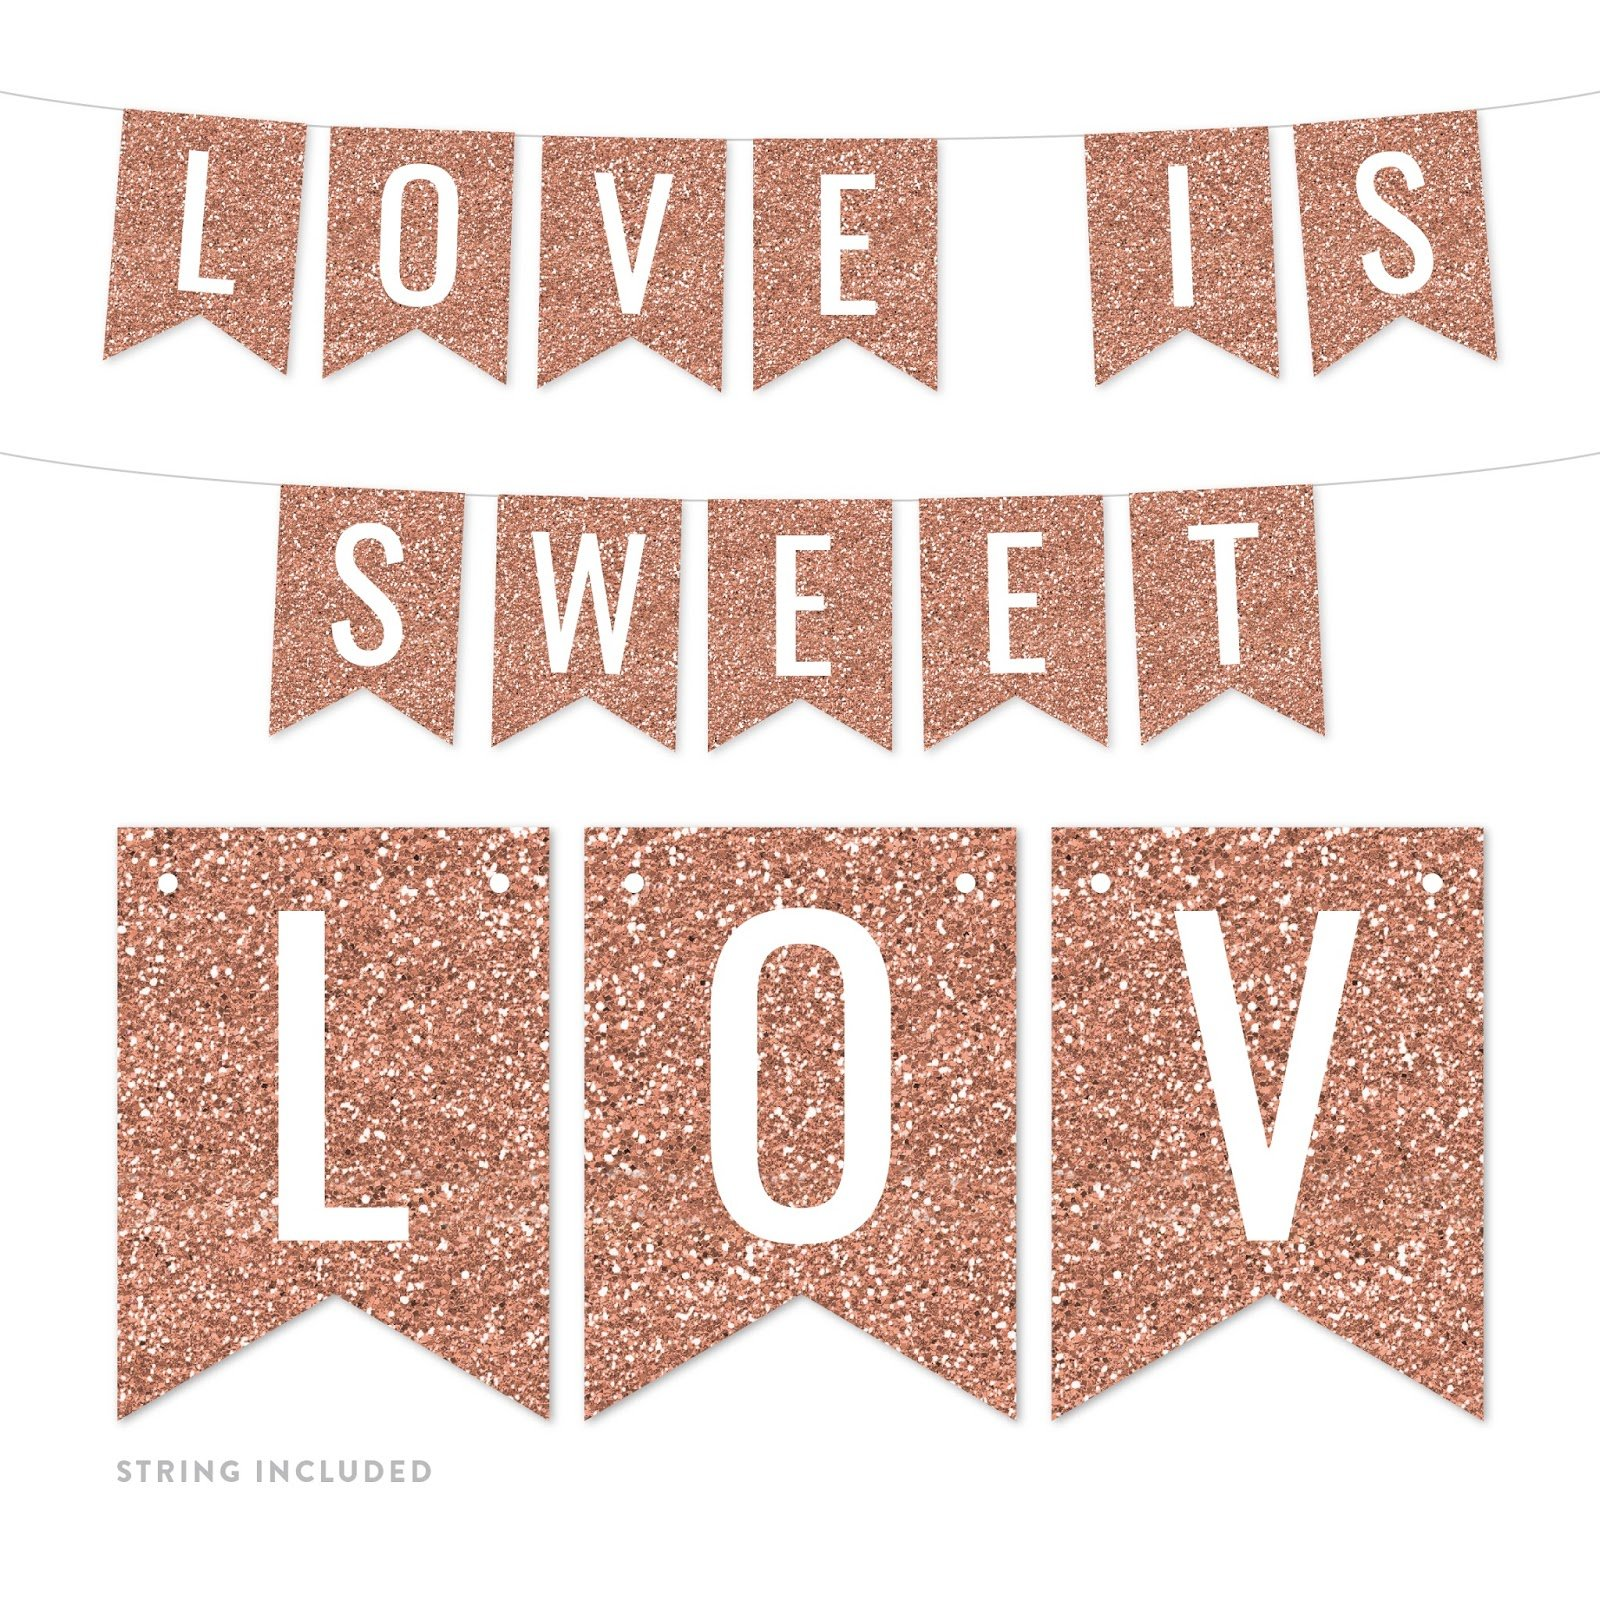 Andaz Press Rose Gold Faux Glitter Background Party Banner Decorations, Love is Sweet, Approx 5-Feet, 1-Set, Birthday Wedding Baby Shower Champagne Colored Hanging Pennant Decor